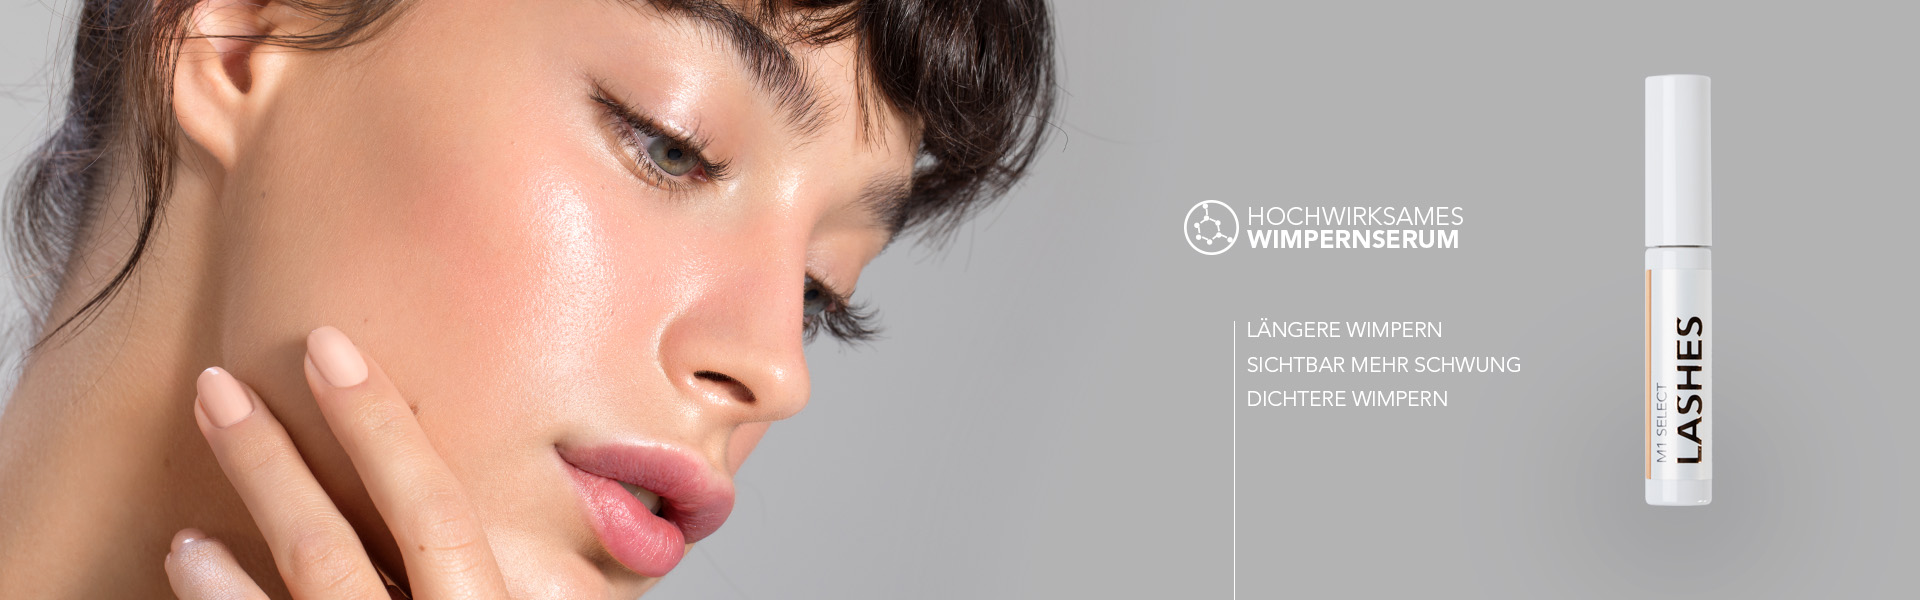 M1 SELECT LASHES Wimpernserum